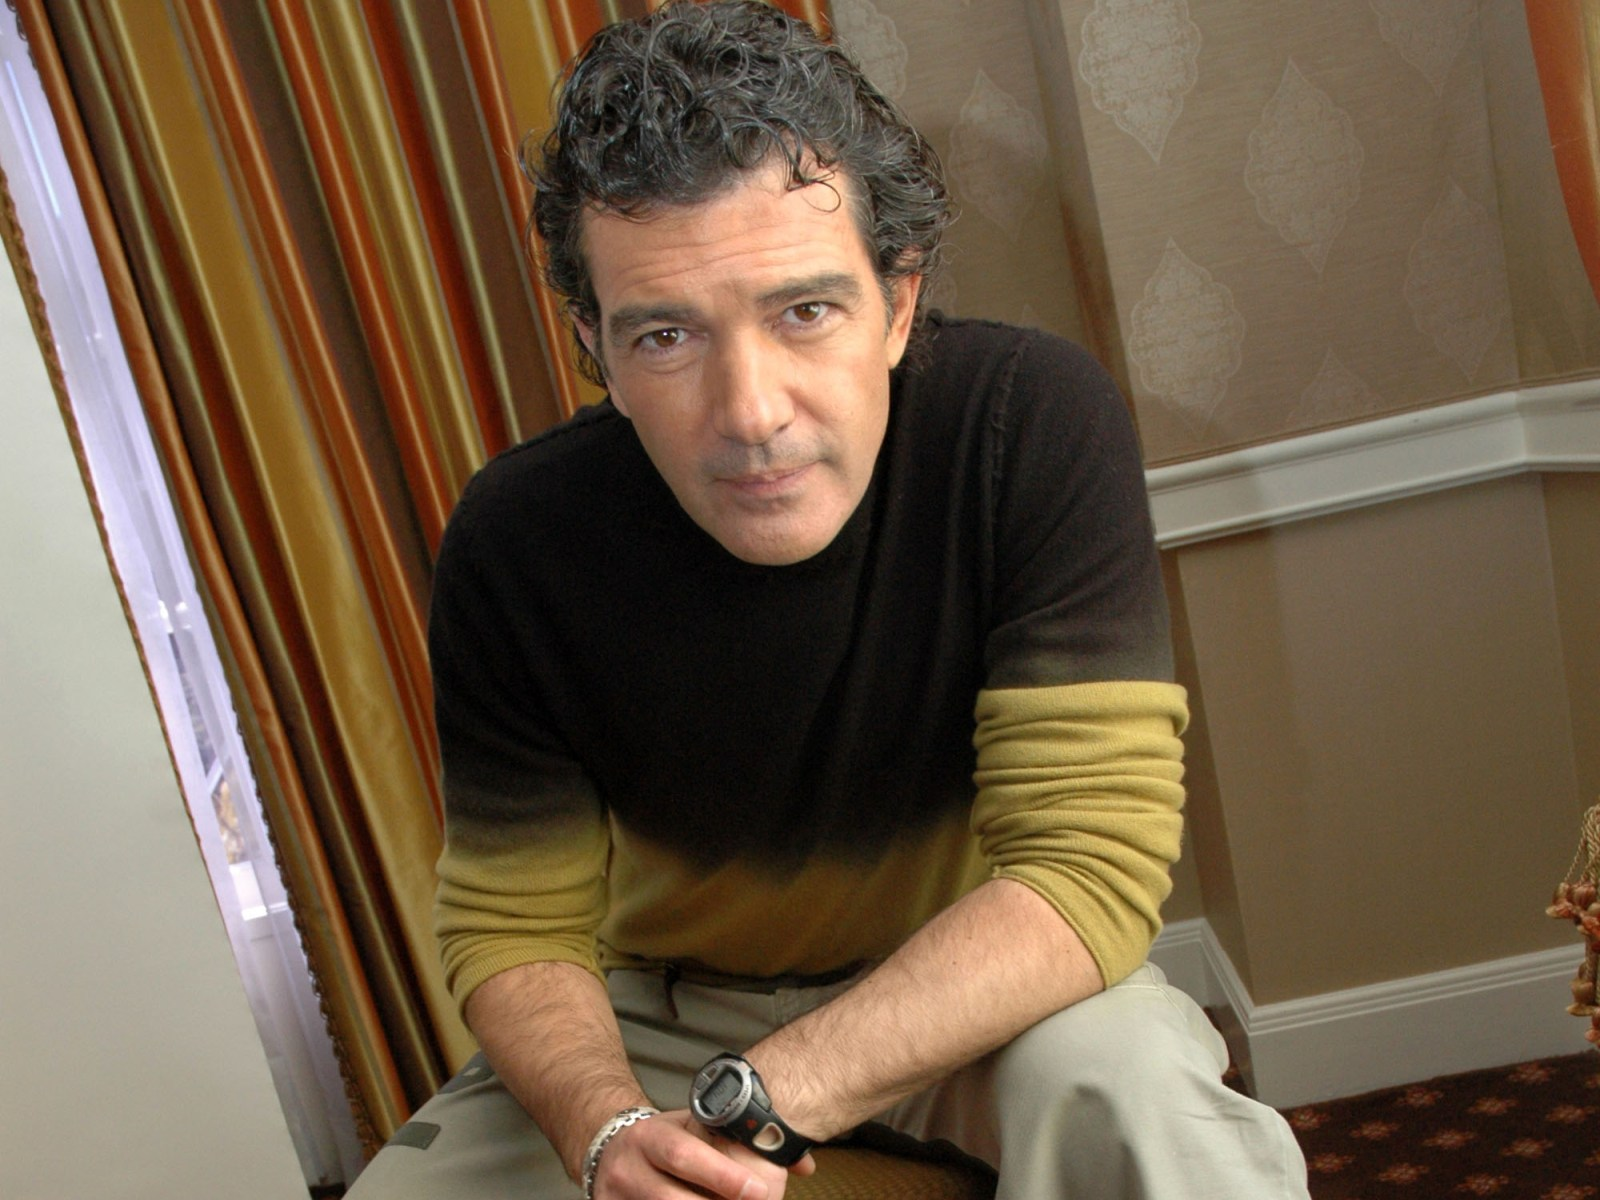 antonio banderas computer wallpaper pictures 52102